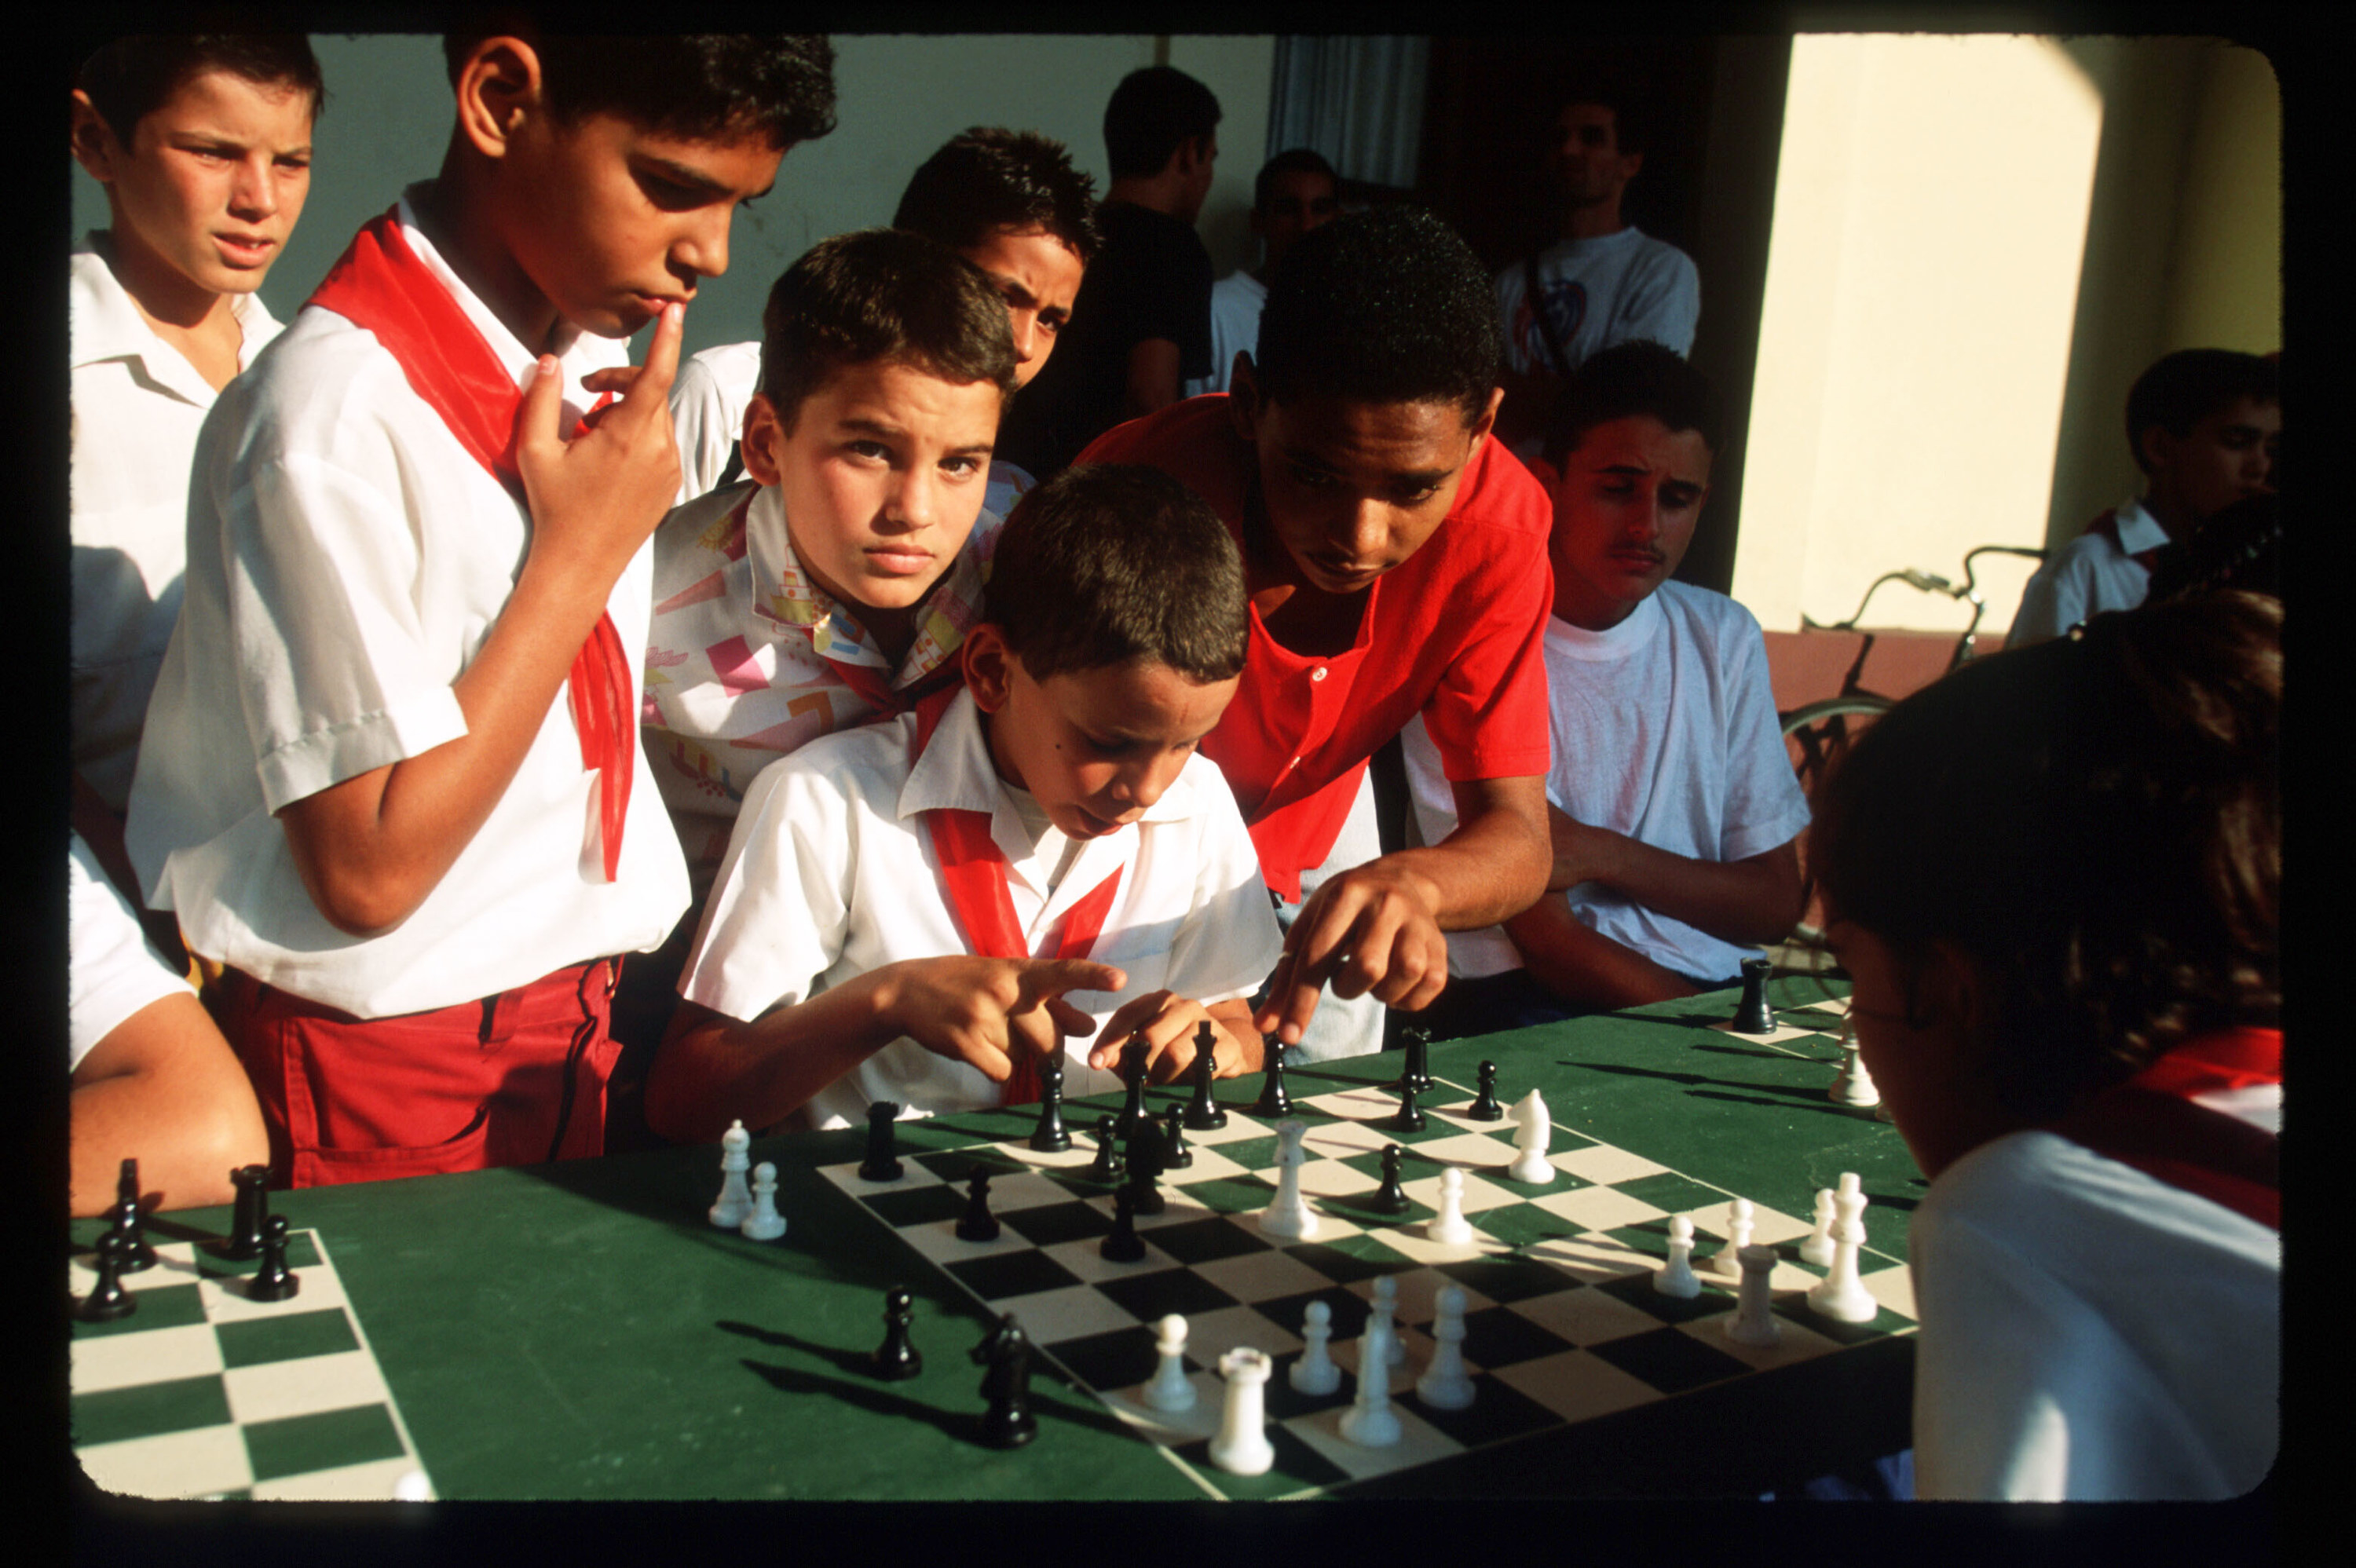 Boys in red-and-white uniforms huddle around a green-and-white chessboard